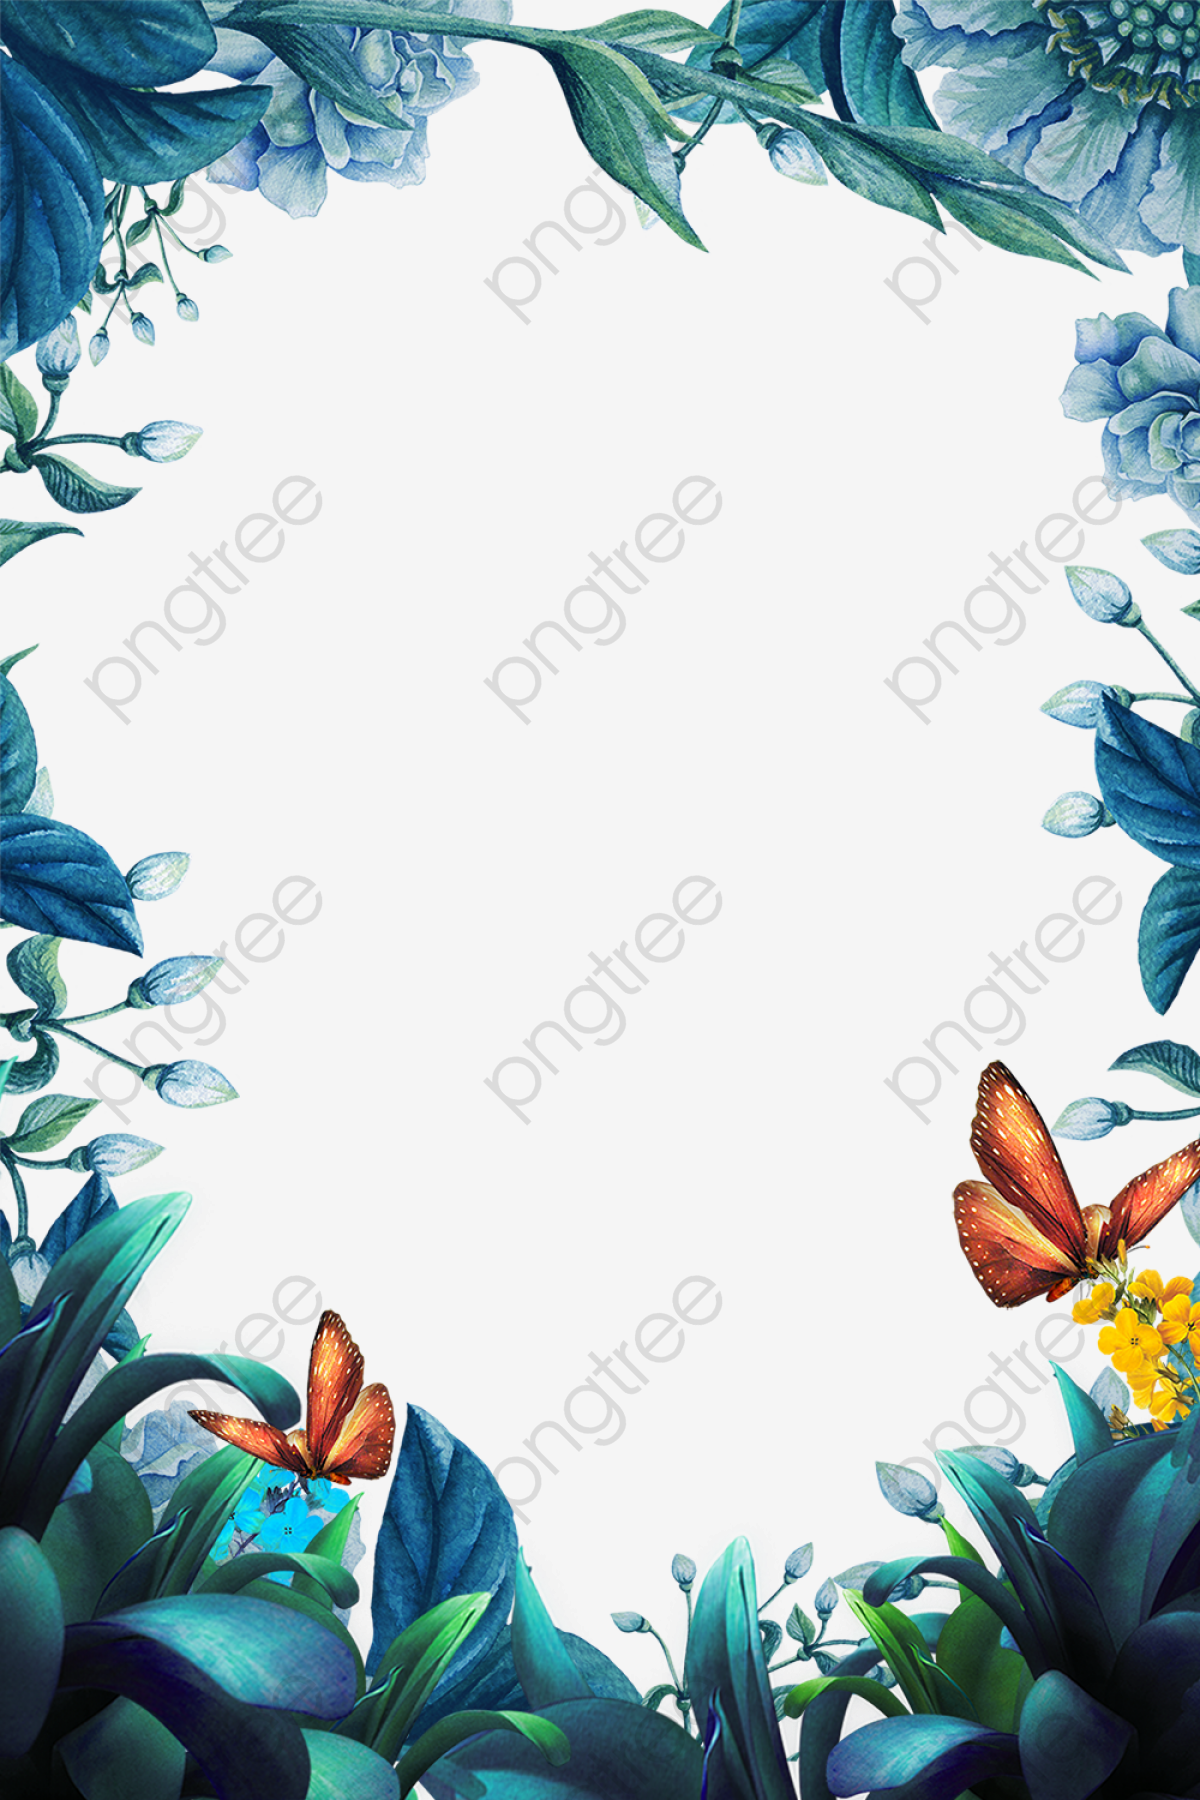 Background template clipart picture royalty free download Forest Dream Tale Background Template, Background Clipart, Forest ... picture royalty free download